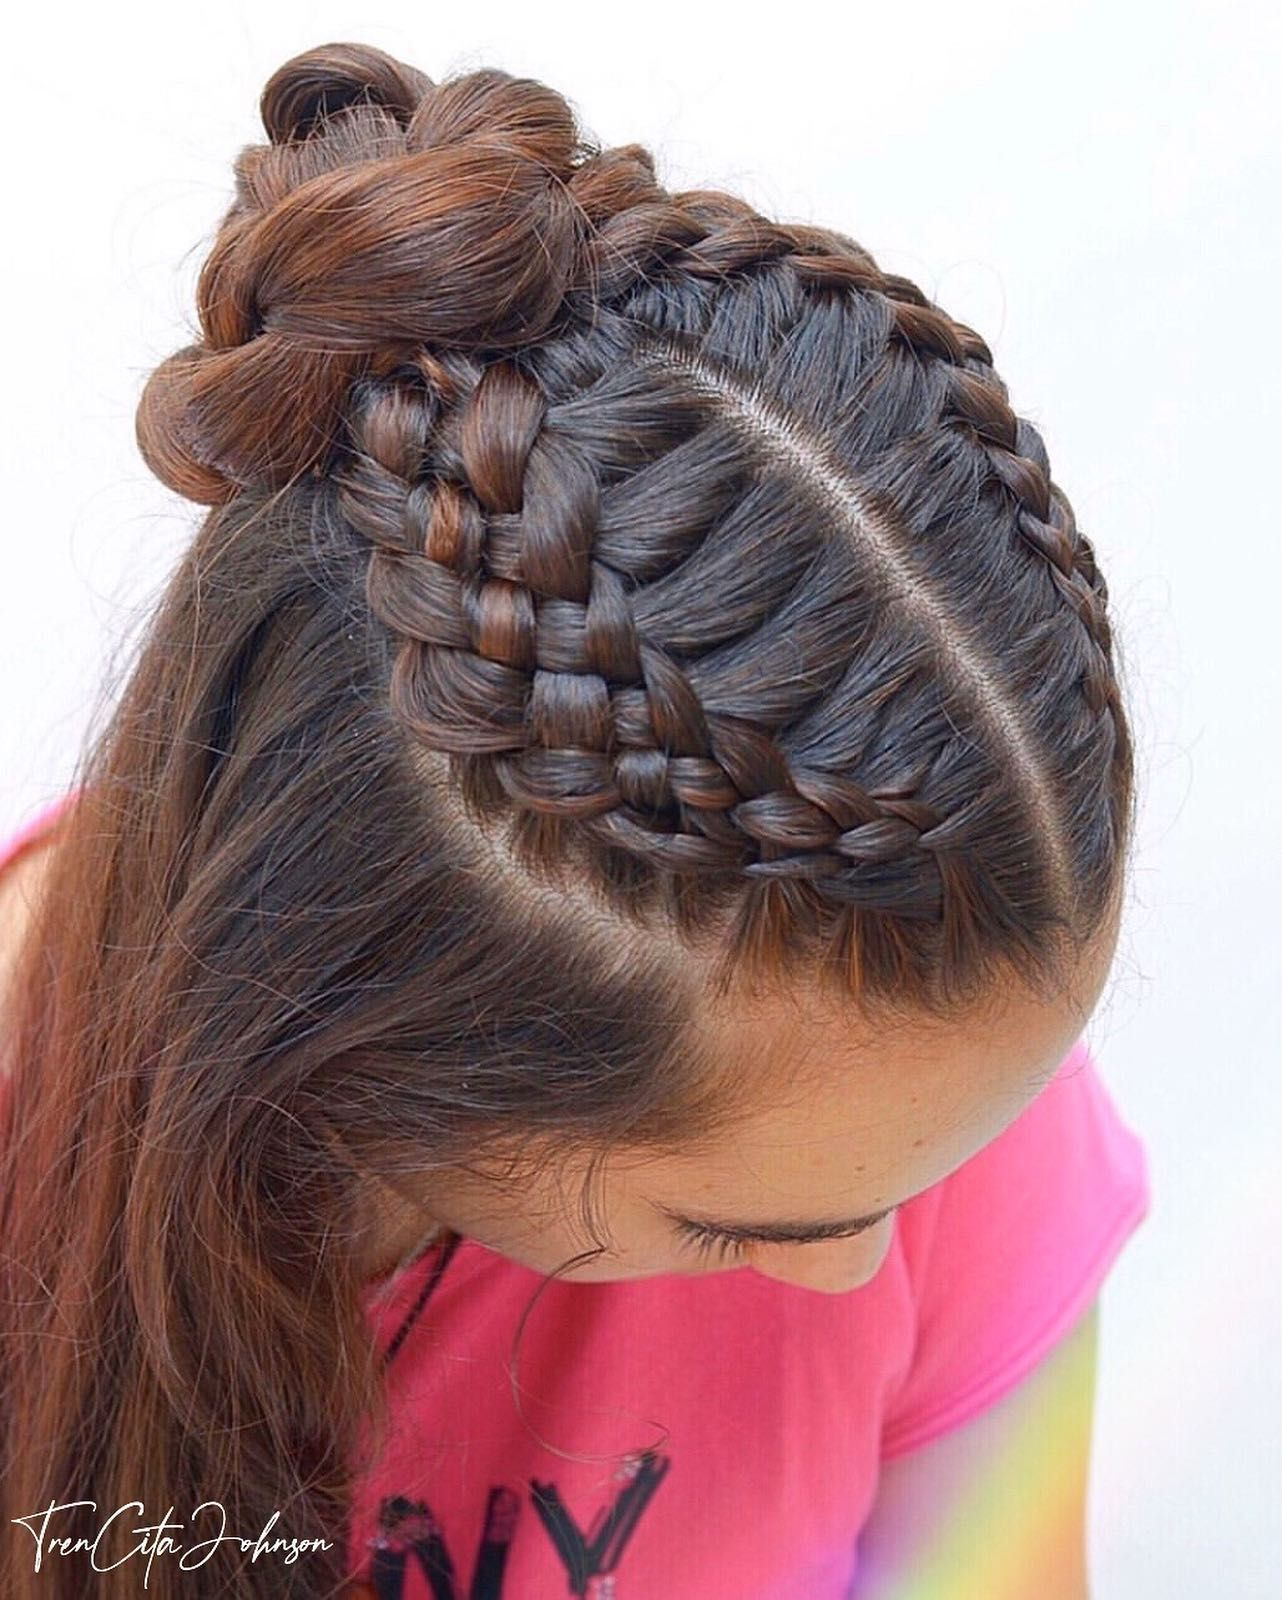 Braided Hairstyles Pictures Braided Hairstyles For Black 12 Year Olds Braided Updos Youtube Hairstyles Braid And C In 2020 Geflochtene Haare Haar Pony Haar Styling